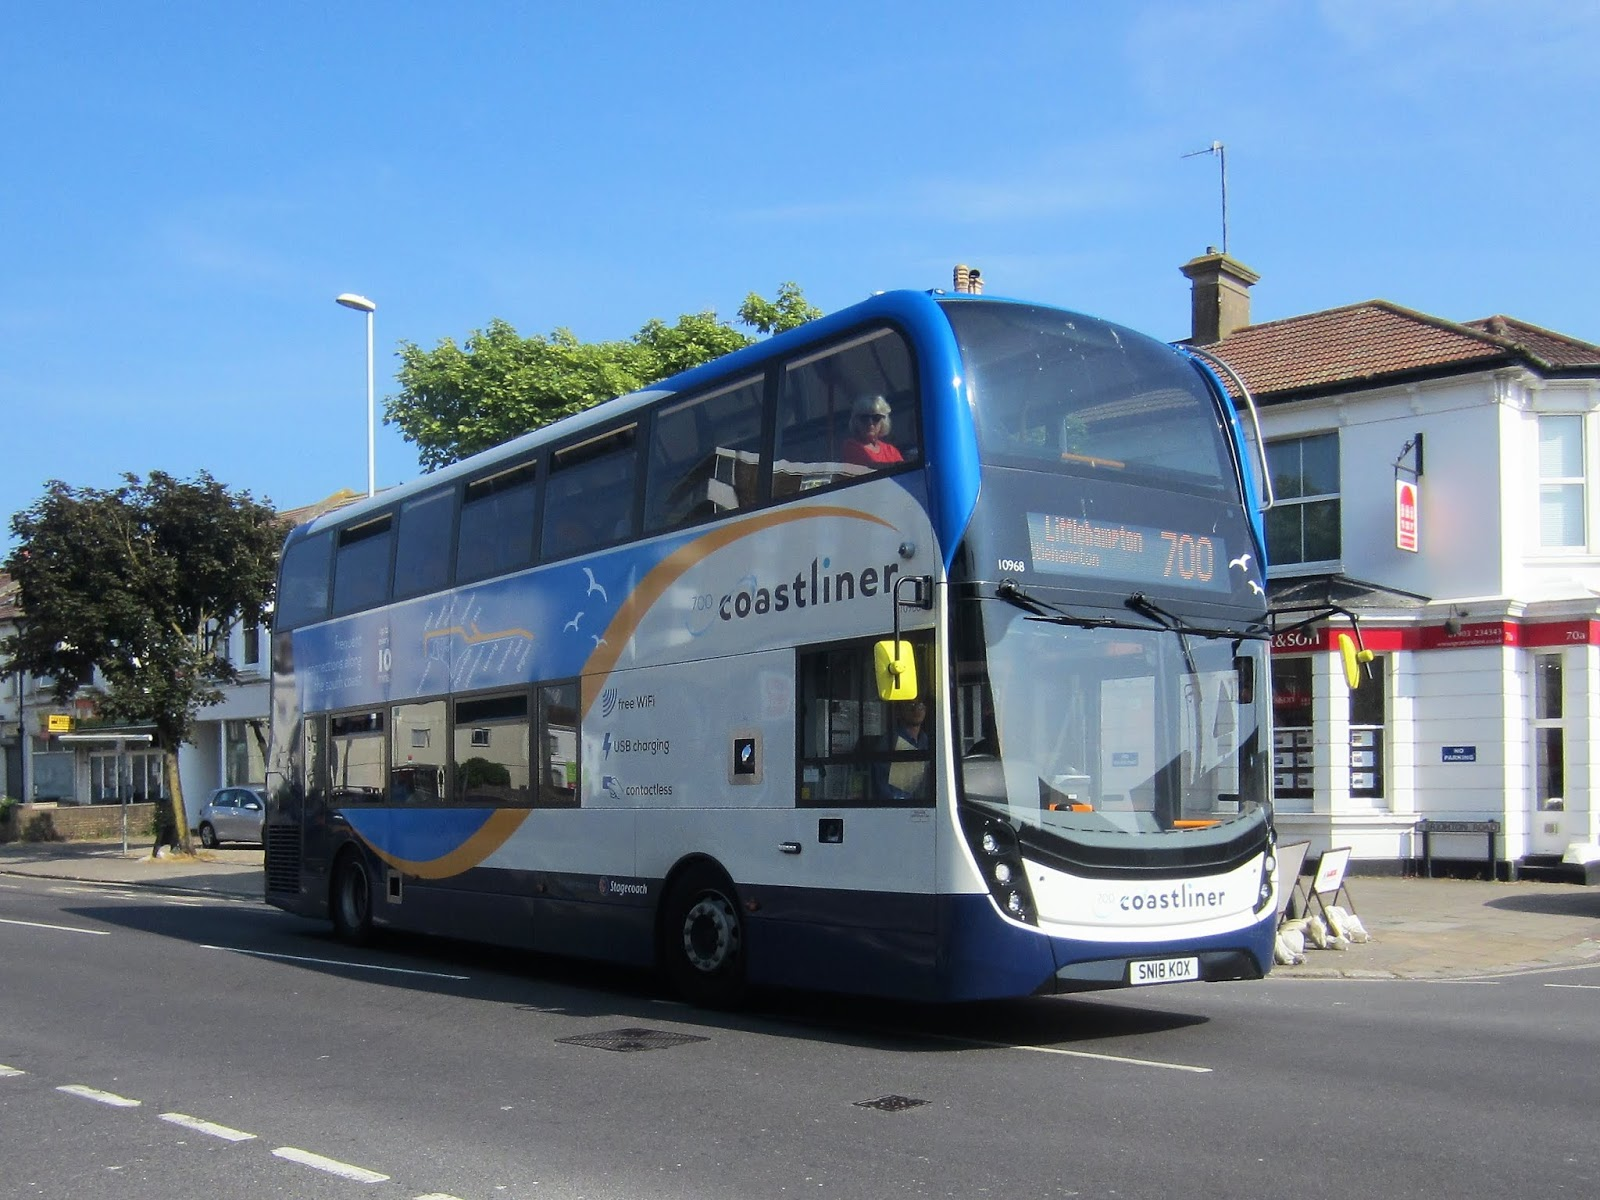 The Main Change Since Our Last Visit Is Introduction Of Thirty 2018 Registered Alexander Dennis Enviro400MMCs Operating 700 Coastliner Service